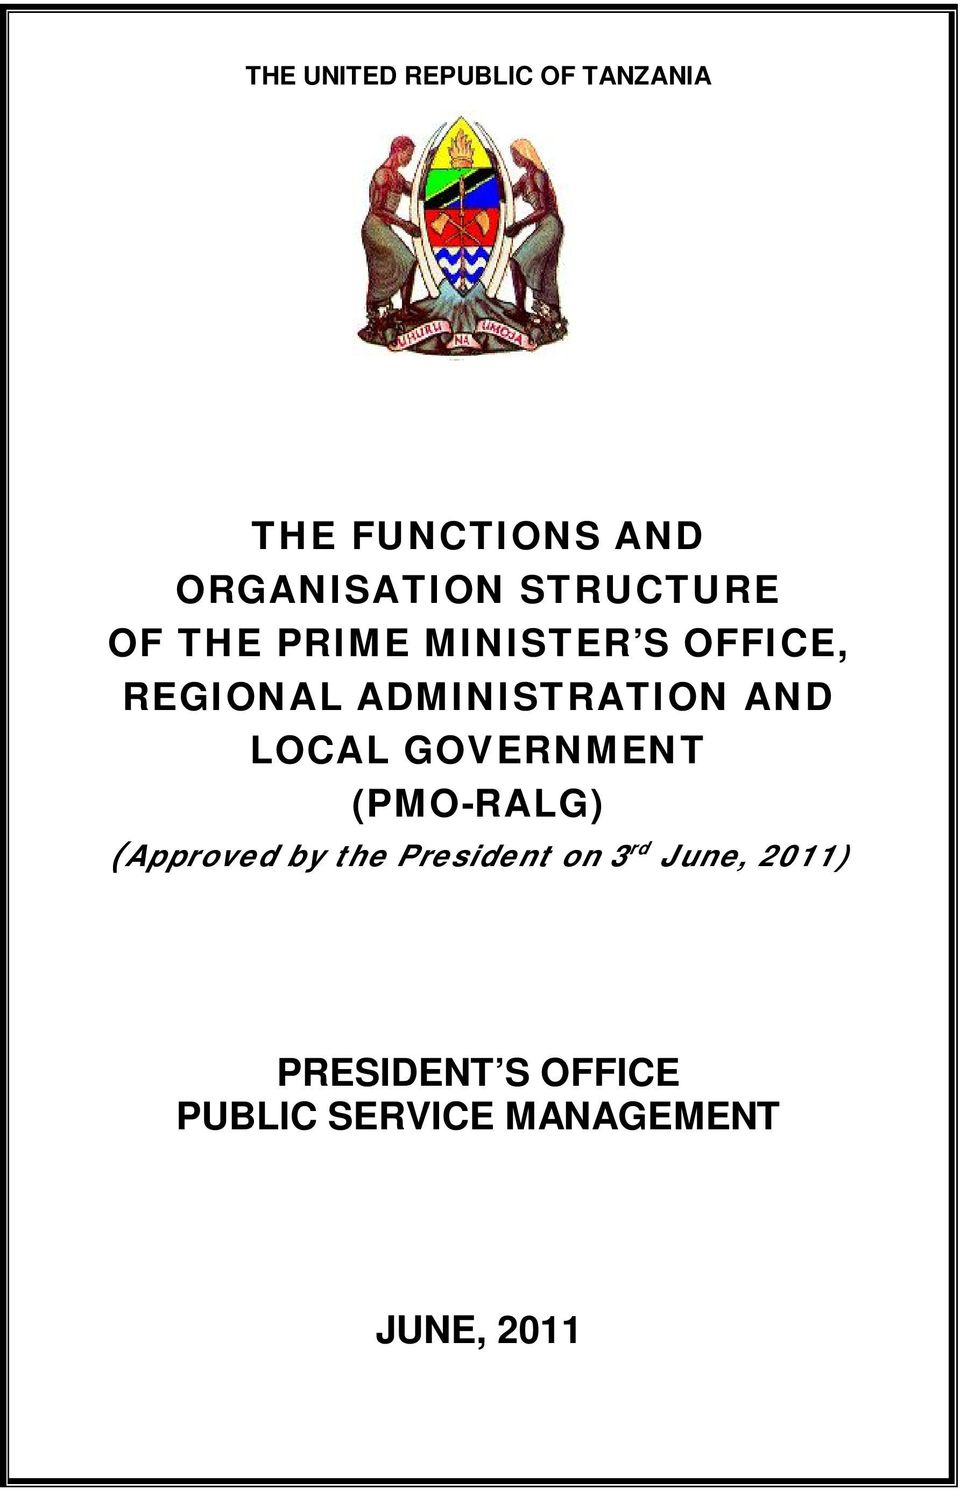 AND LOCAL GOVERNMENT (PMO-RALG) (Approved by the President on 3